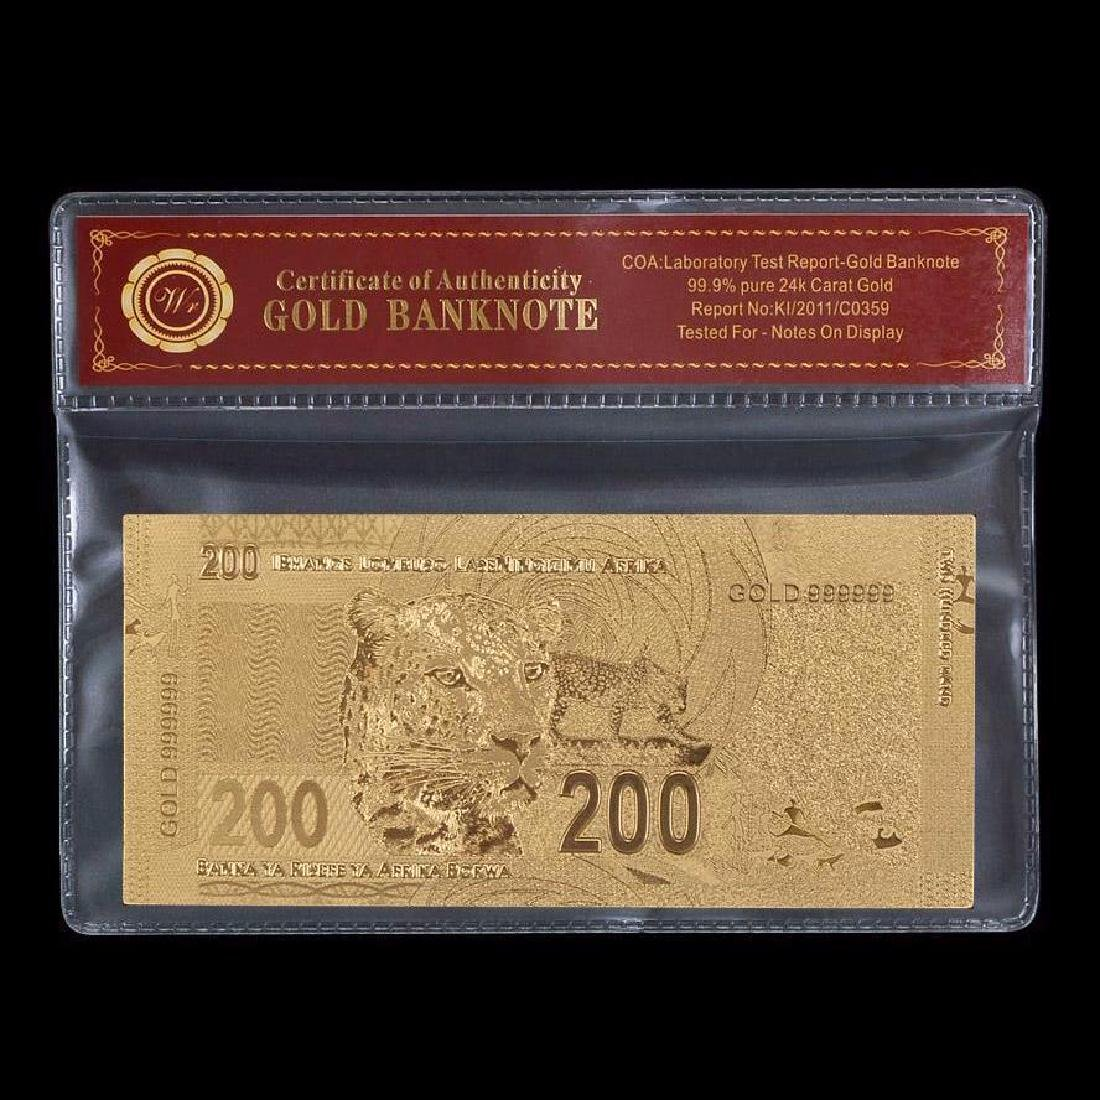 South Africa 200 Rand 24K Gold Clad Banknote - 2